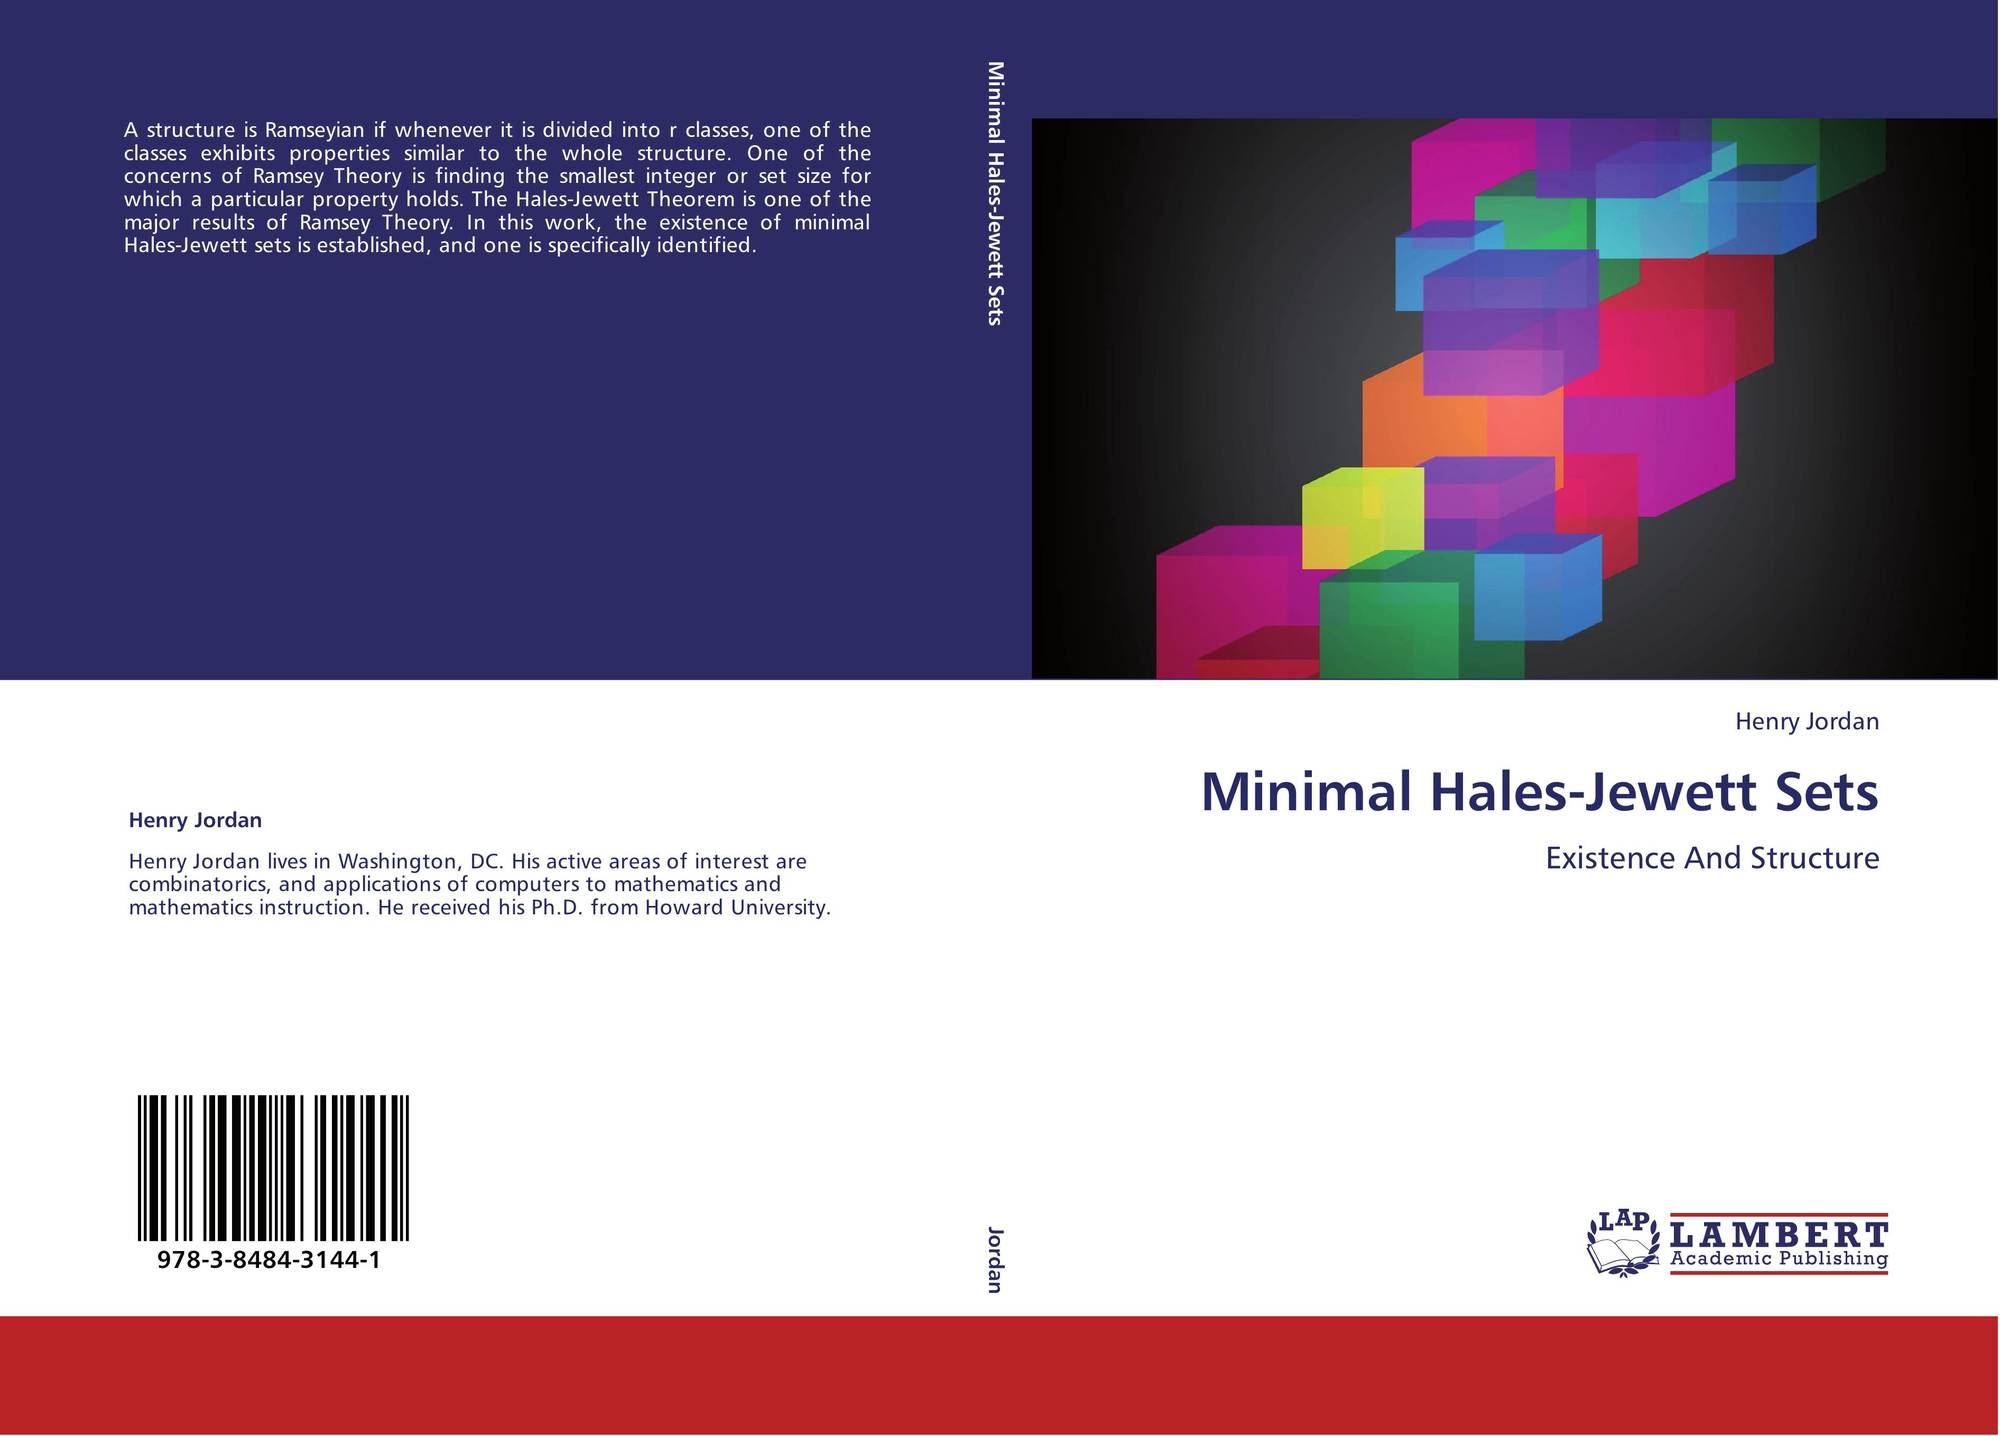 Search Results For Existance Jewett Wiring Diagram Bookcover Of Minimal Hales Sets Omni Badge 9307e2201e5f762643a64561af3456be64a87707602f96b92ef18a9bbcada116